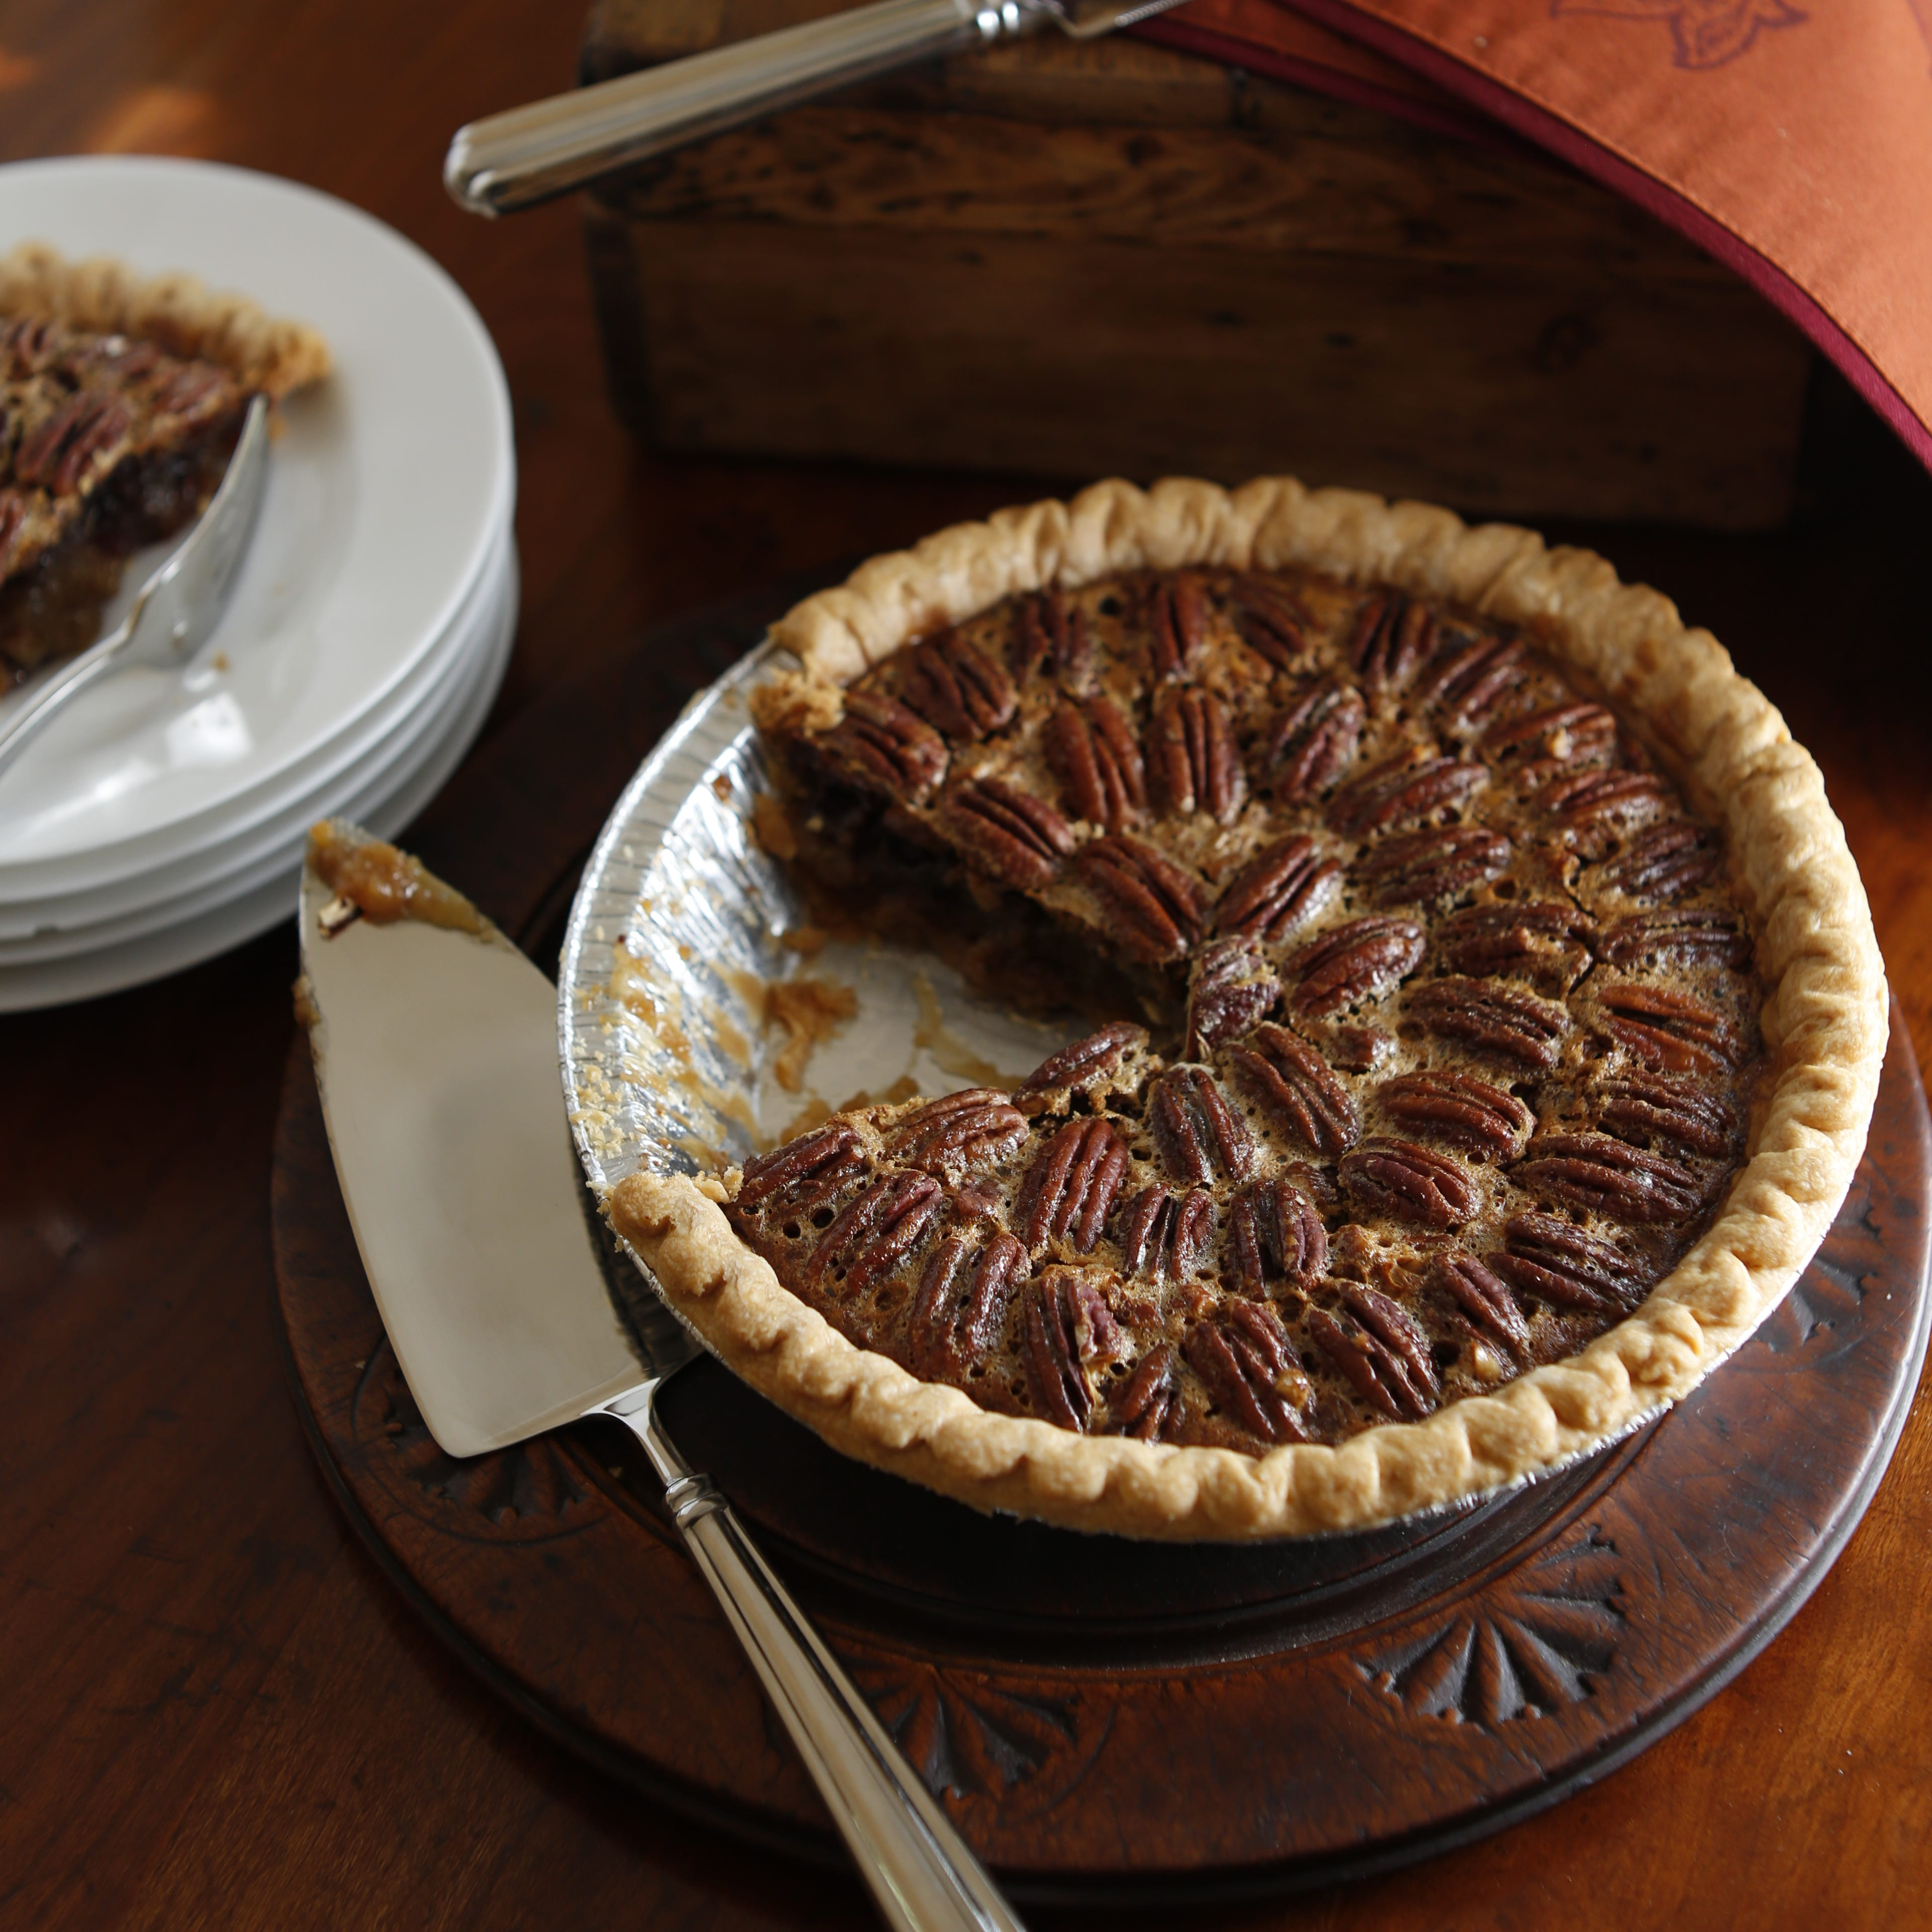 The Weekly Dish: Grandma's Pecan Pie for your holiday table